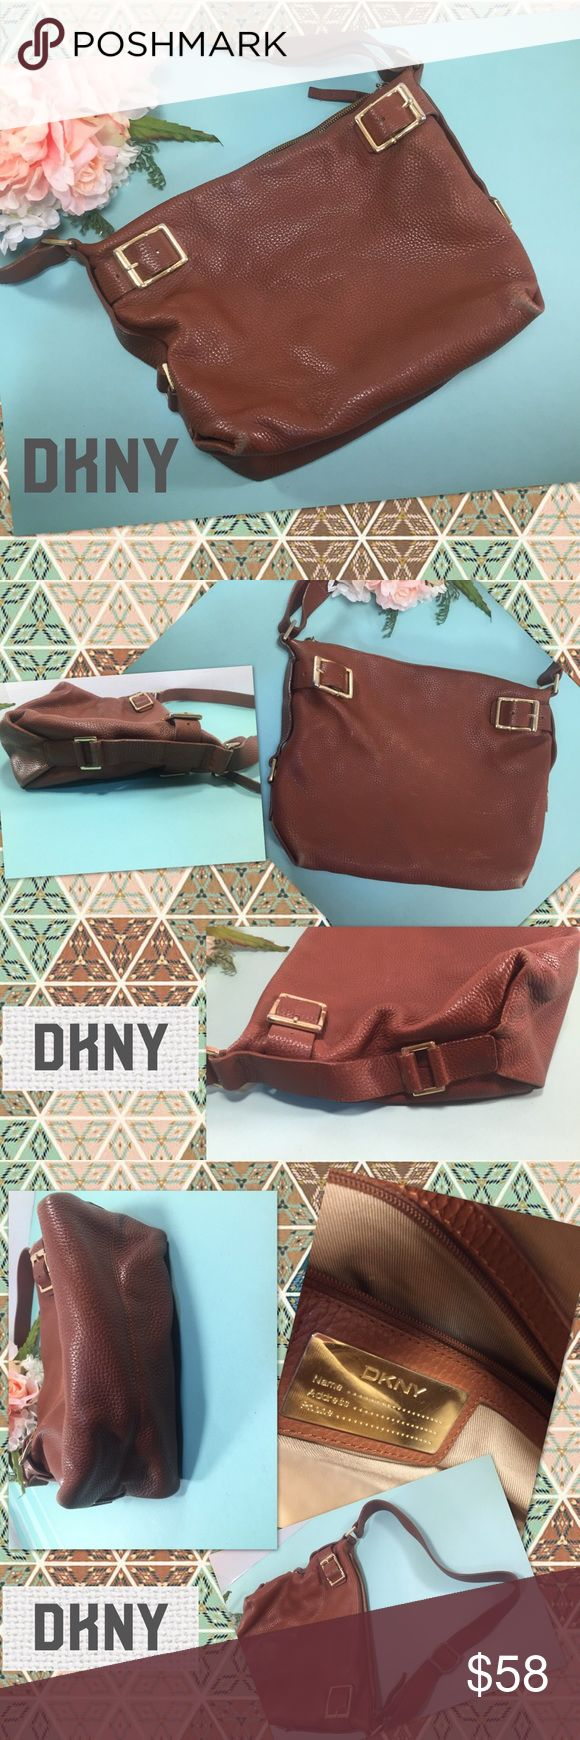 DKNY Brown Pebbled Leather Bucket Bag DKNY Brown Pebbled Leather Bucket Bag has gold tone hardware, buckle detailing, high-quality pebbled leather, Long adjustable shoulder strap, light tan interior with one zip pocket, and a few other utility pockets. As seen in photos, there is moderate wear on base corners, but the bag still looks very nice. Interior lining shows signs of usage. Medium sized bag. Orig. $198. Dkny Bags Shoulder Bags